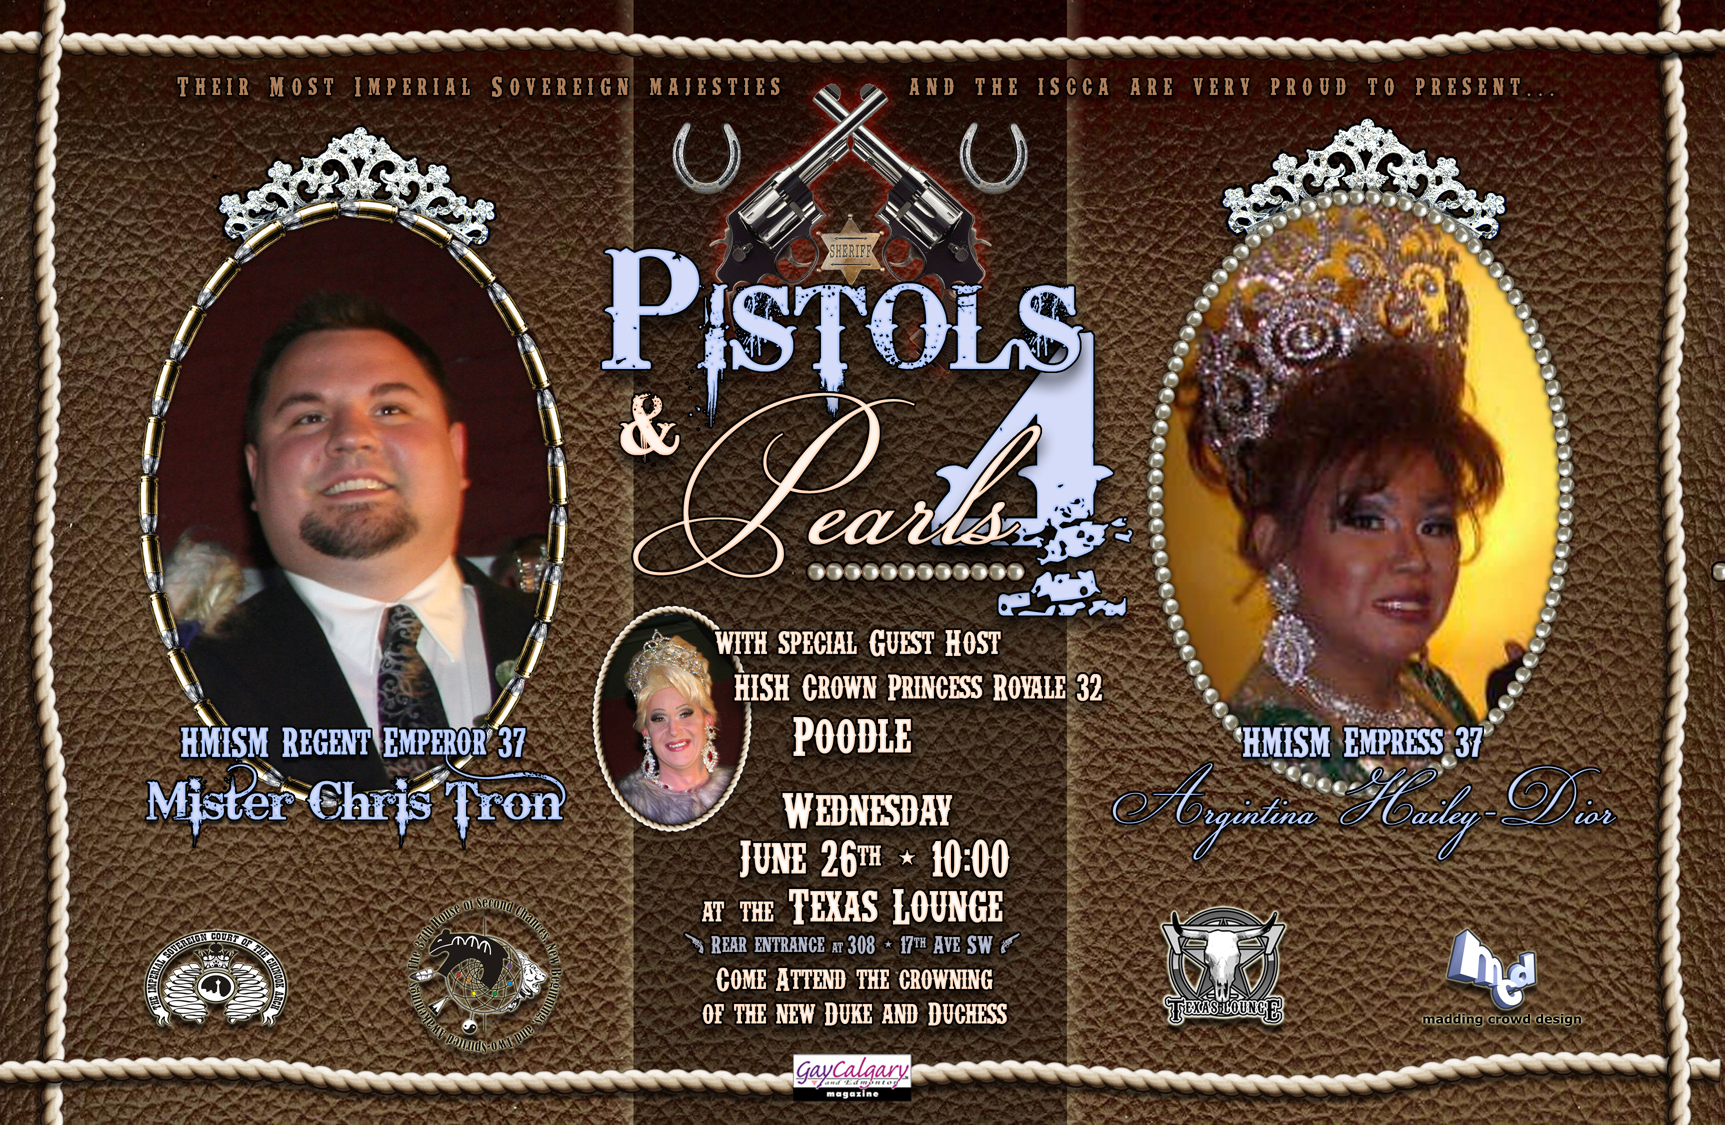 Pistols and Pearls (Calgary, Wed Jun 26, 10:00AM)